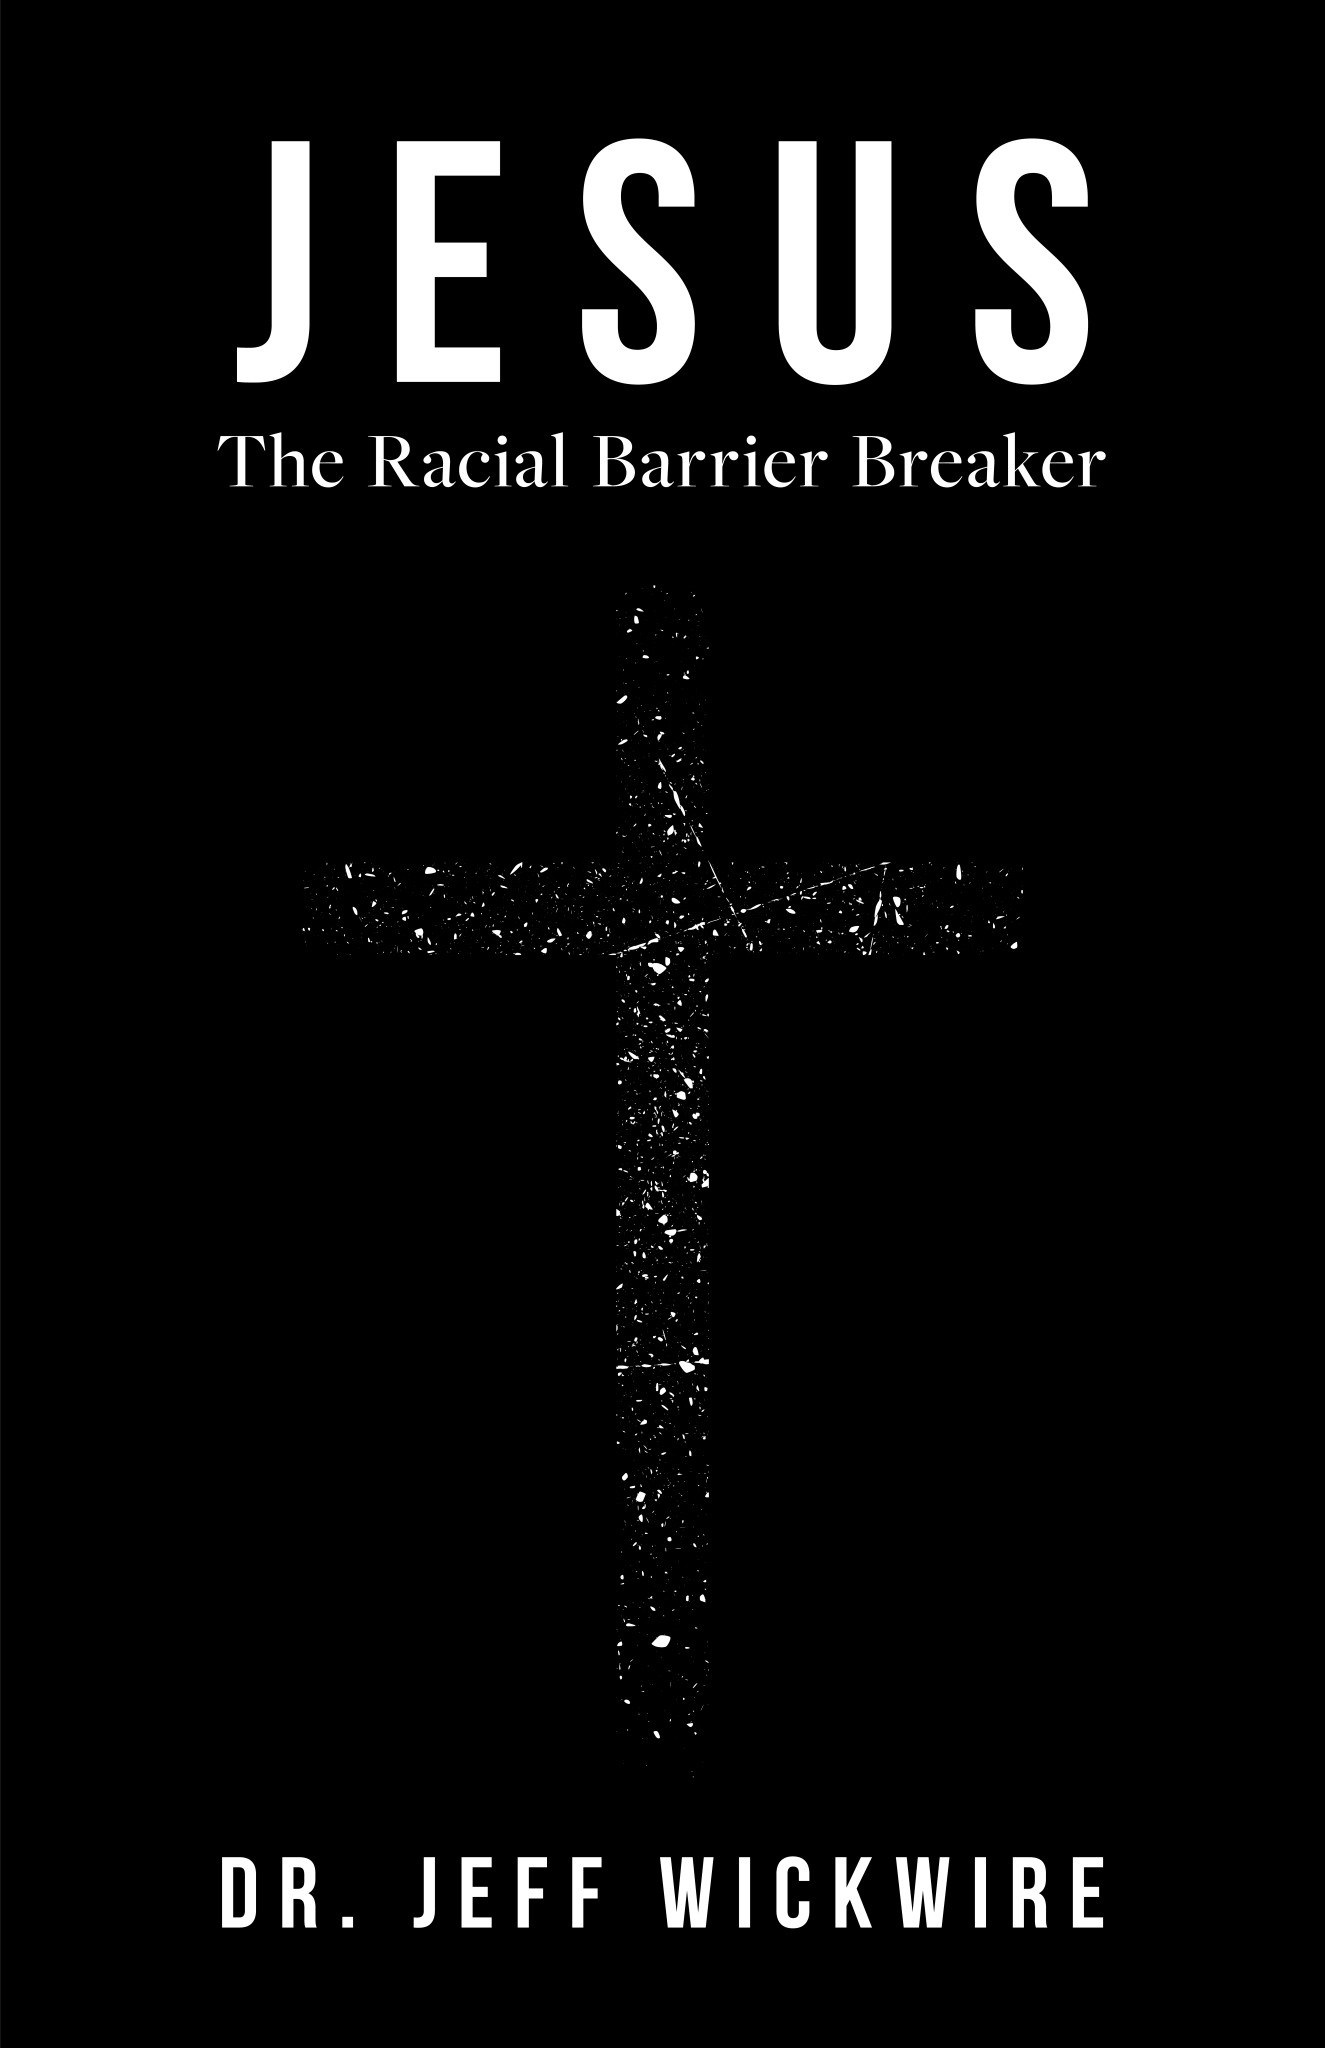 Jesus The Racial Barrier Breaker By Dr. Jeff Wickwire-1